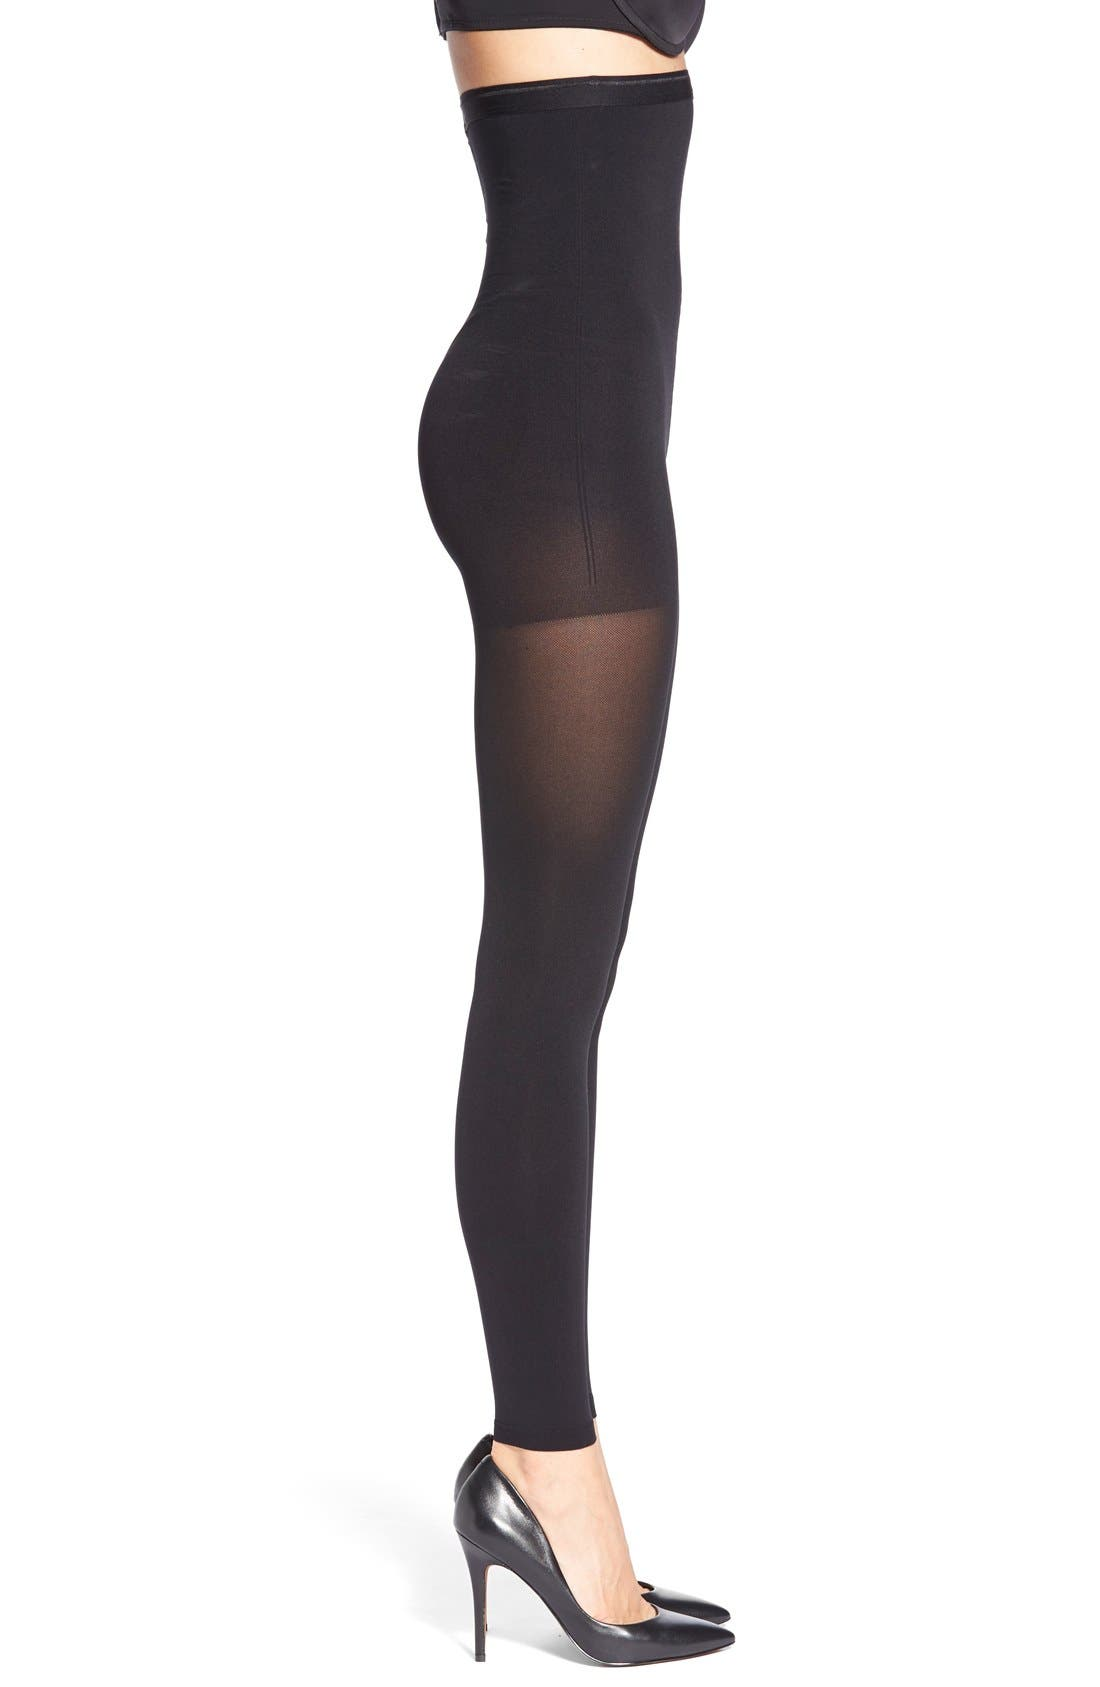 ITEM m6 High Rise Opaque Footless Shaping Tights